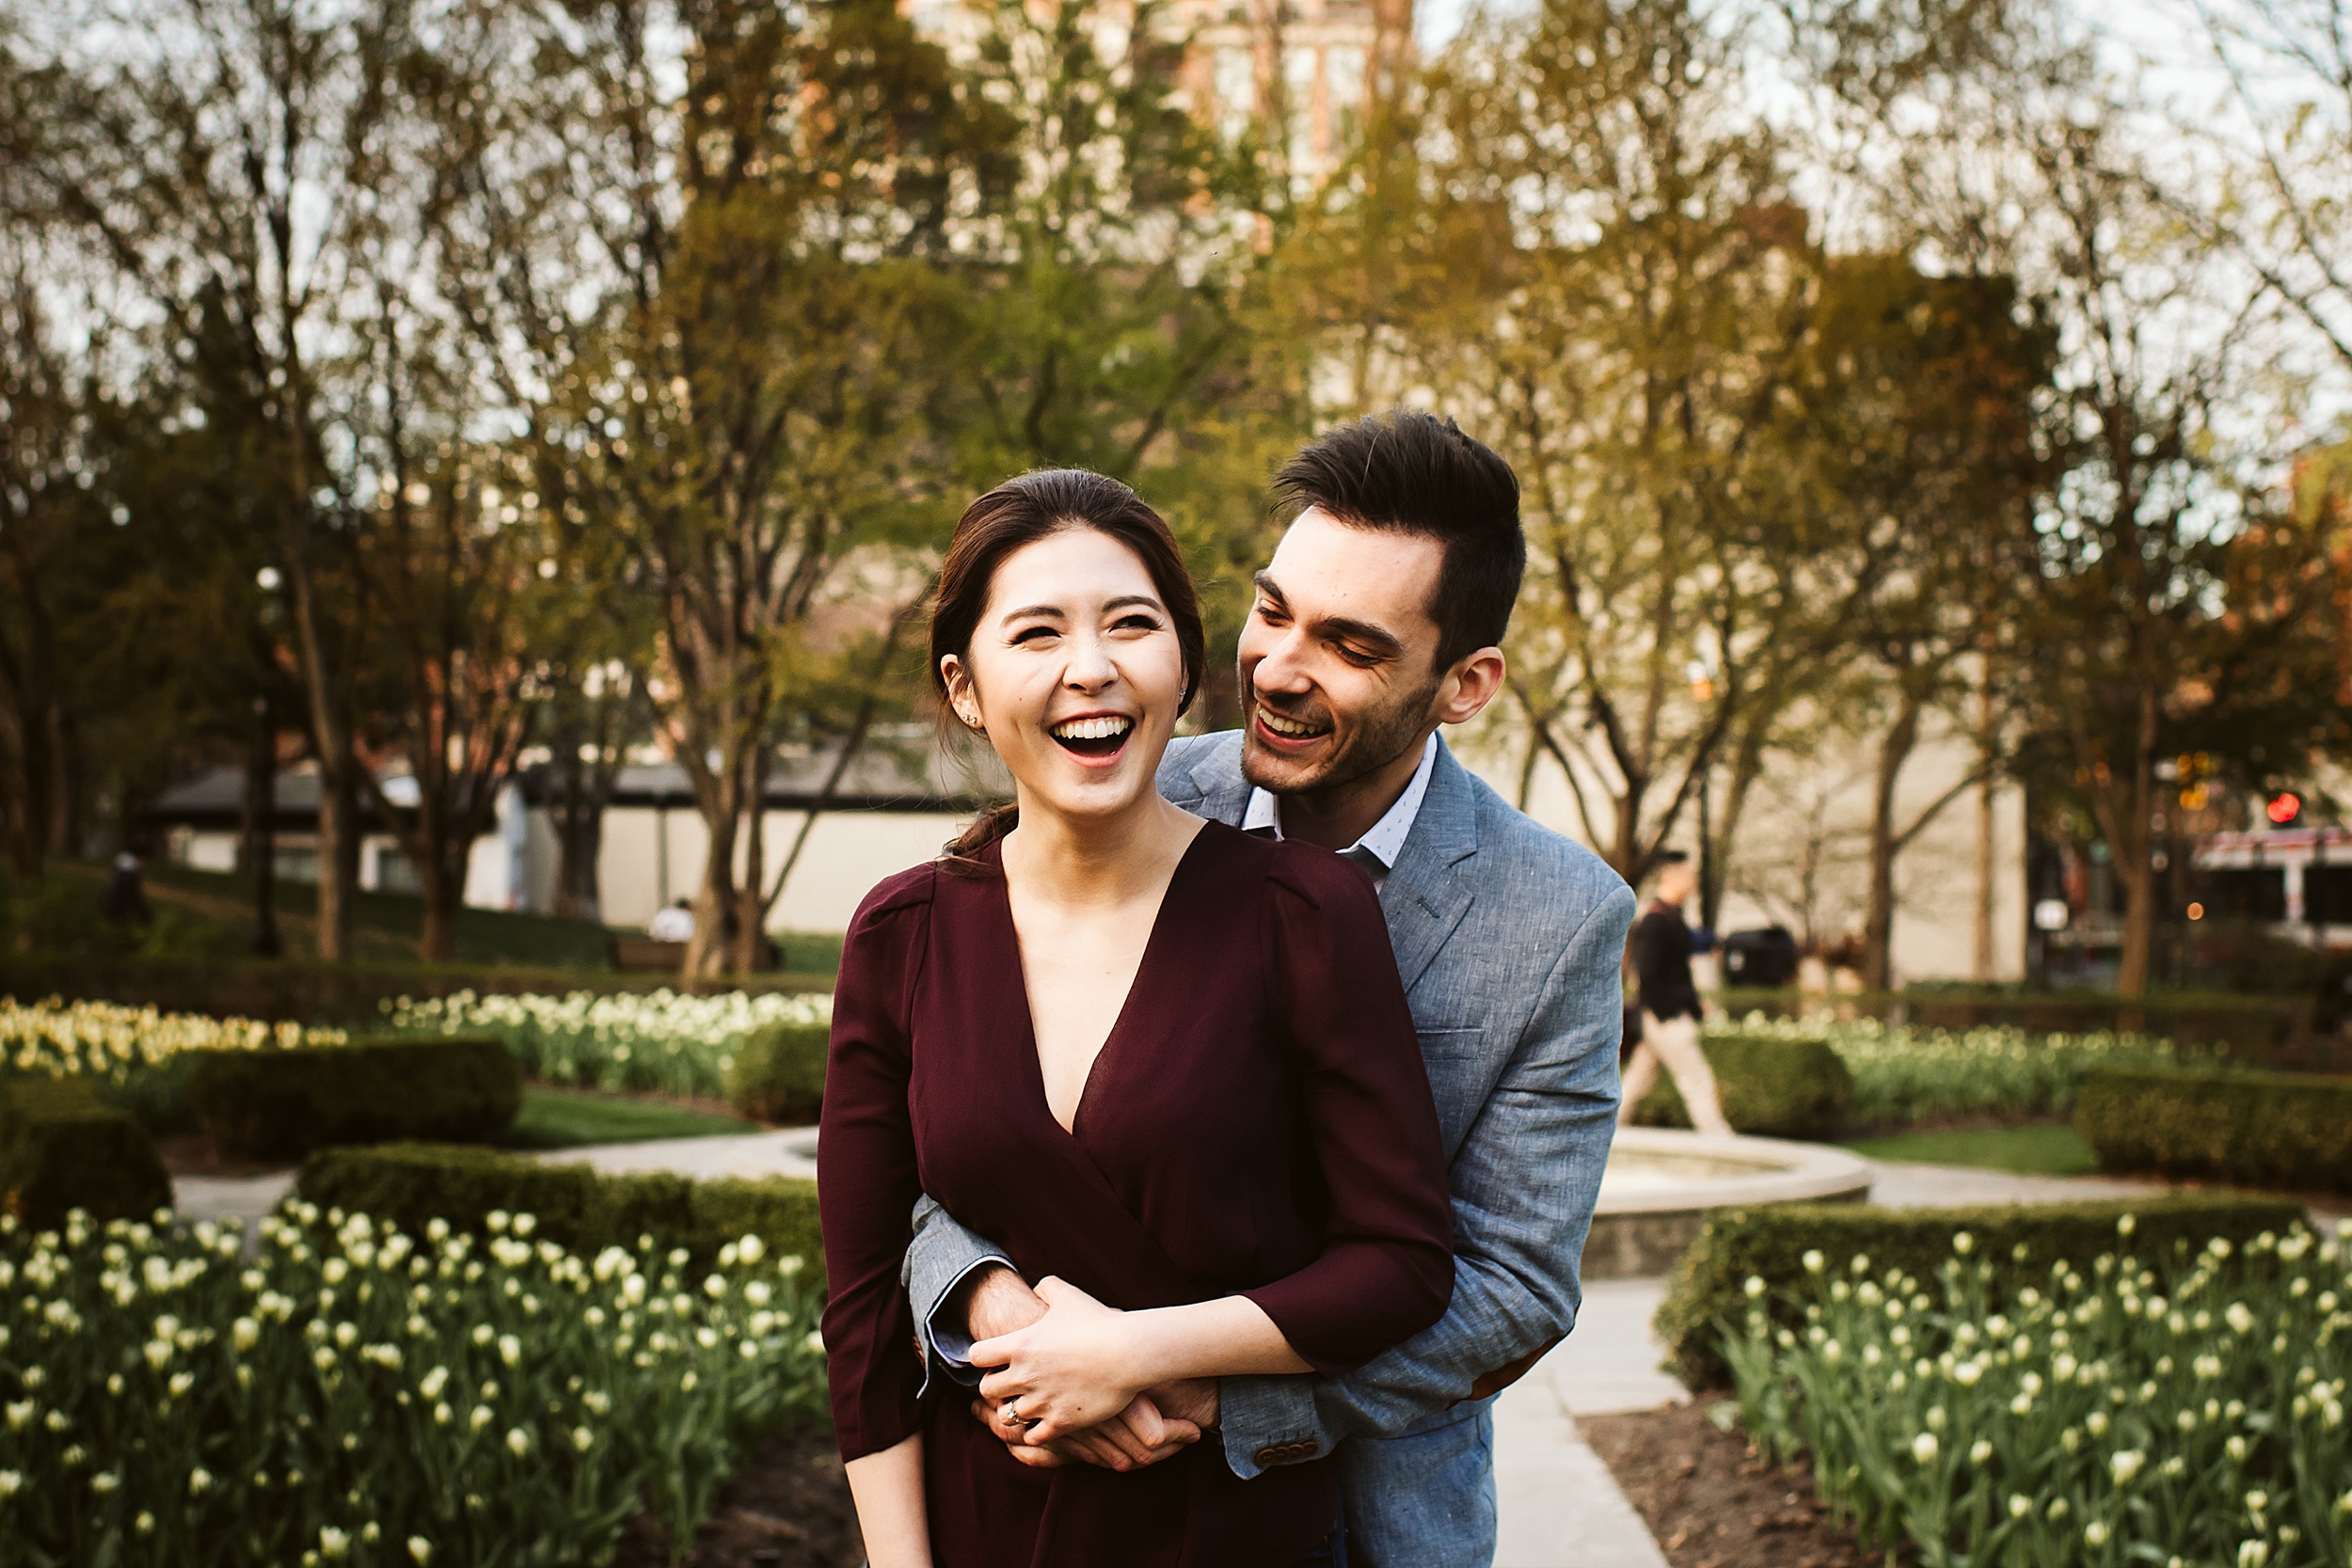 Toronto-Wedding-Photographers-St-Lawrence-Market-Engagement-shoot_0003.jpg